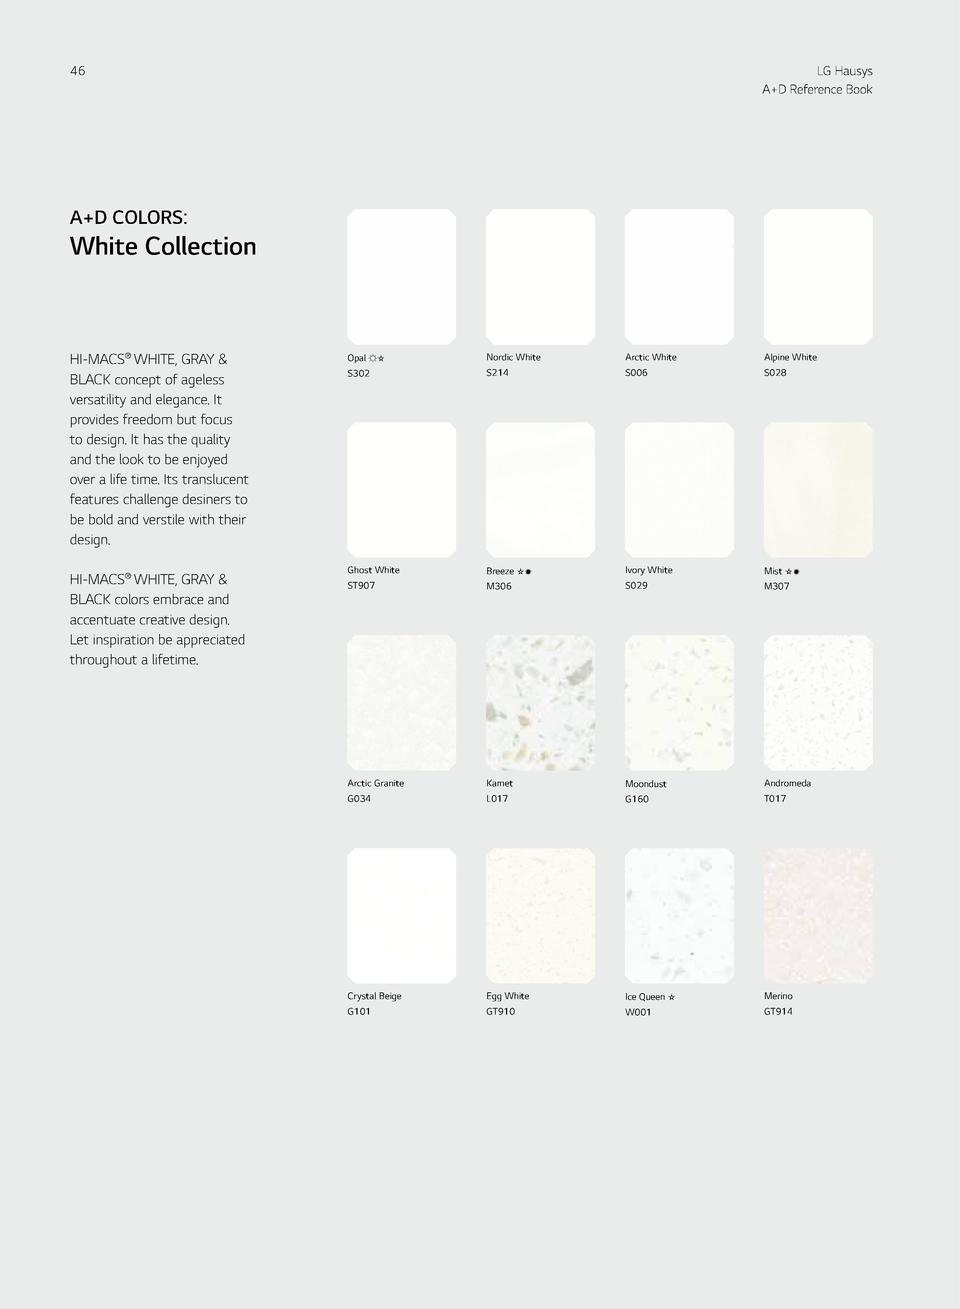 46  LG Hausys A D Reference Book  HI-MACS  A D COLORS   A D COLORS   White Collection  Gray   Black Collection  47  HI-MAC...